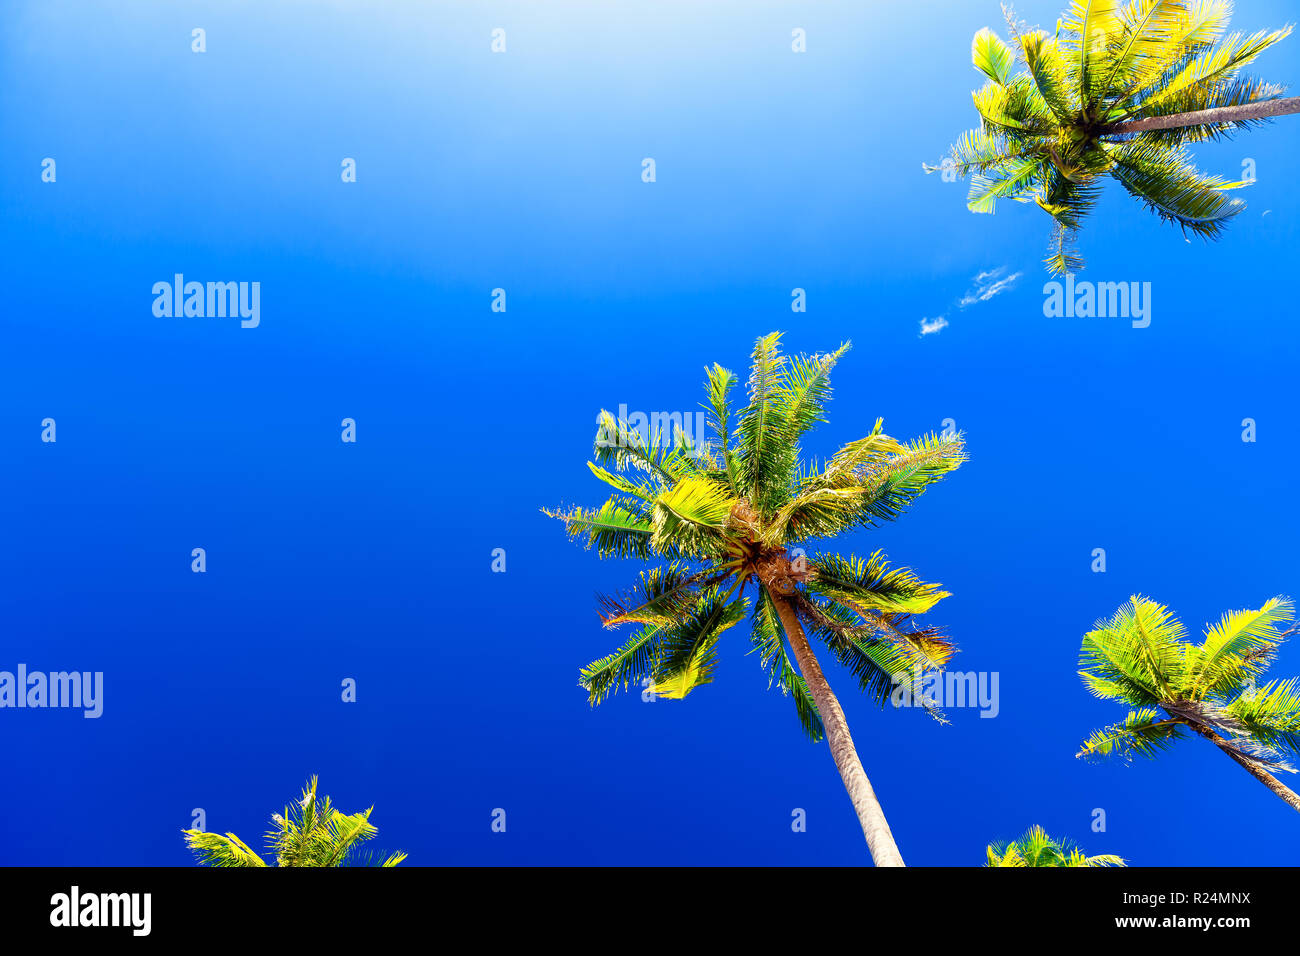 Tropical beach background with palm trees silhouette at sunset. Vintage effect. - Stock Image